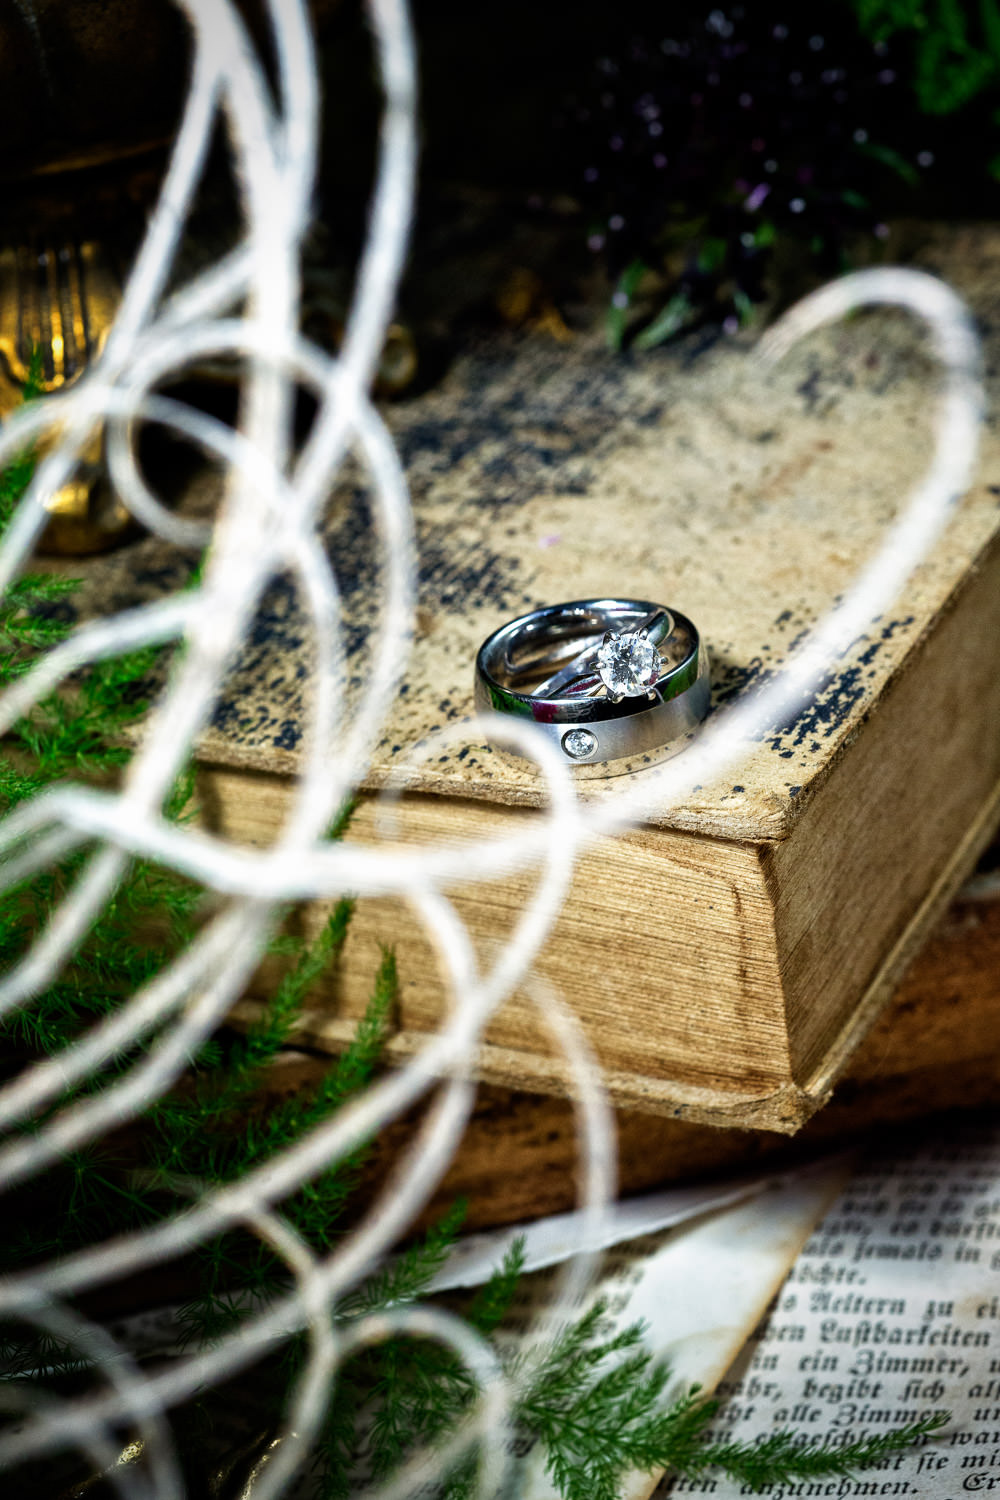 f27-photography-ventura-county-somis-hartley-botanica-wedding-ring-shot-detail